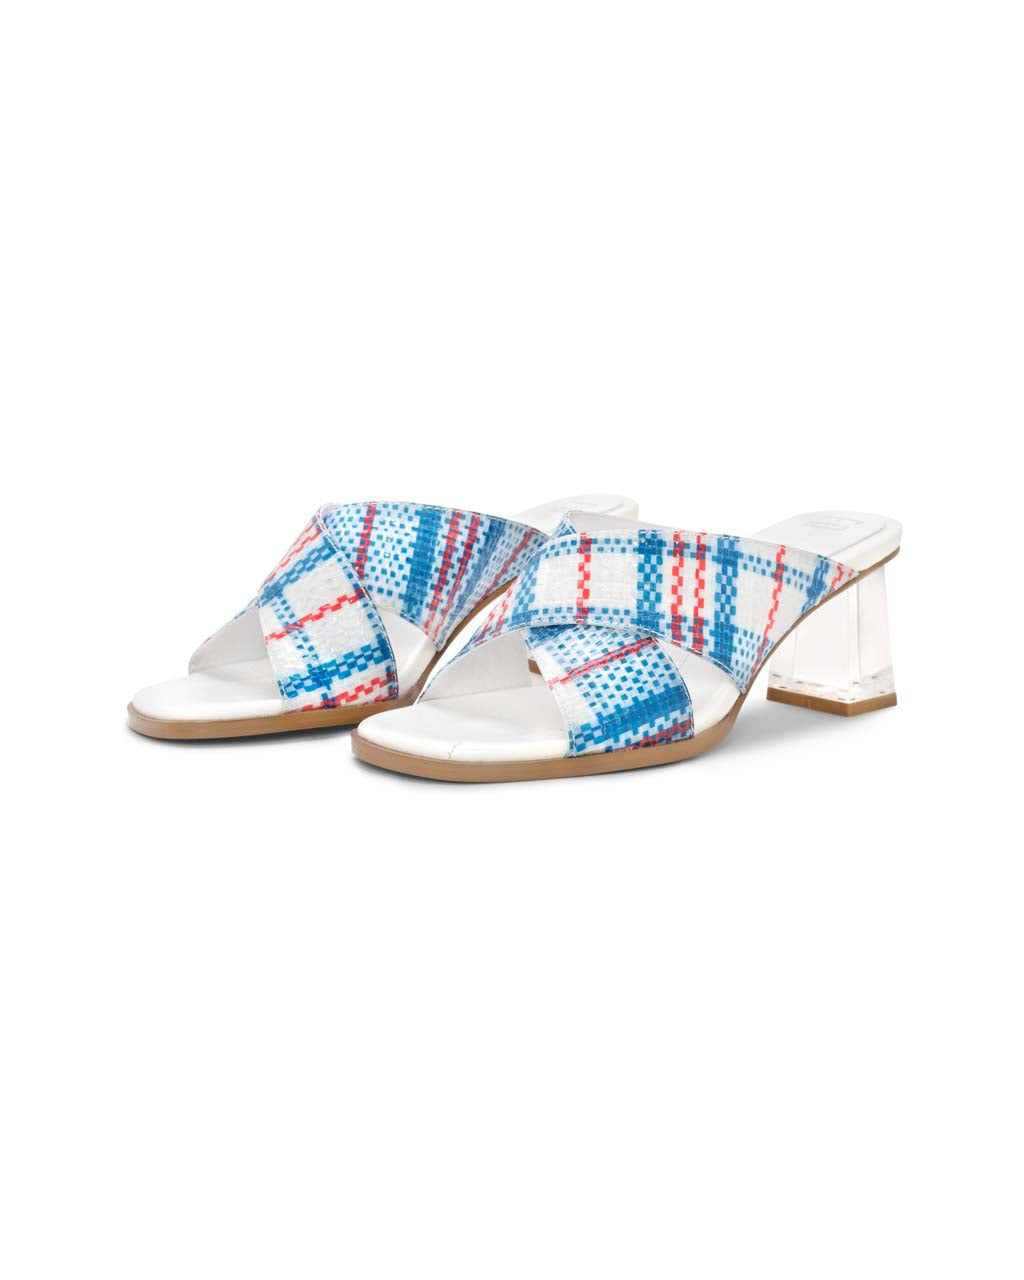 sandals with plaid patterned uppers and clear lucite heel